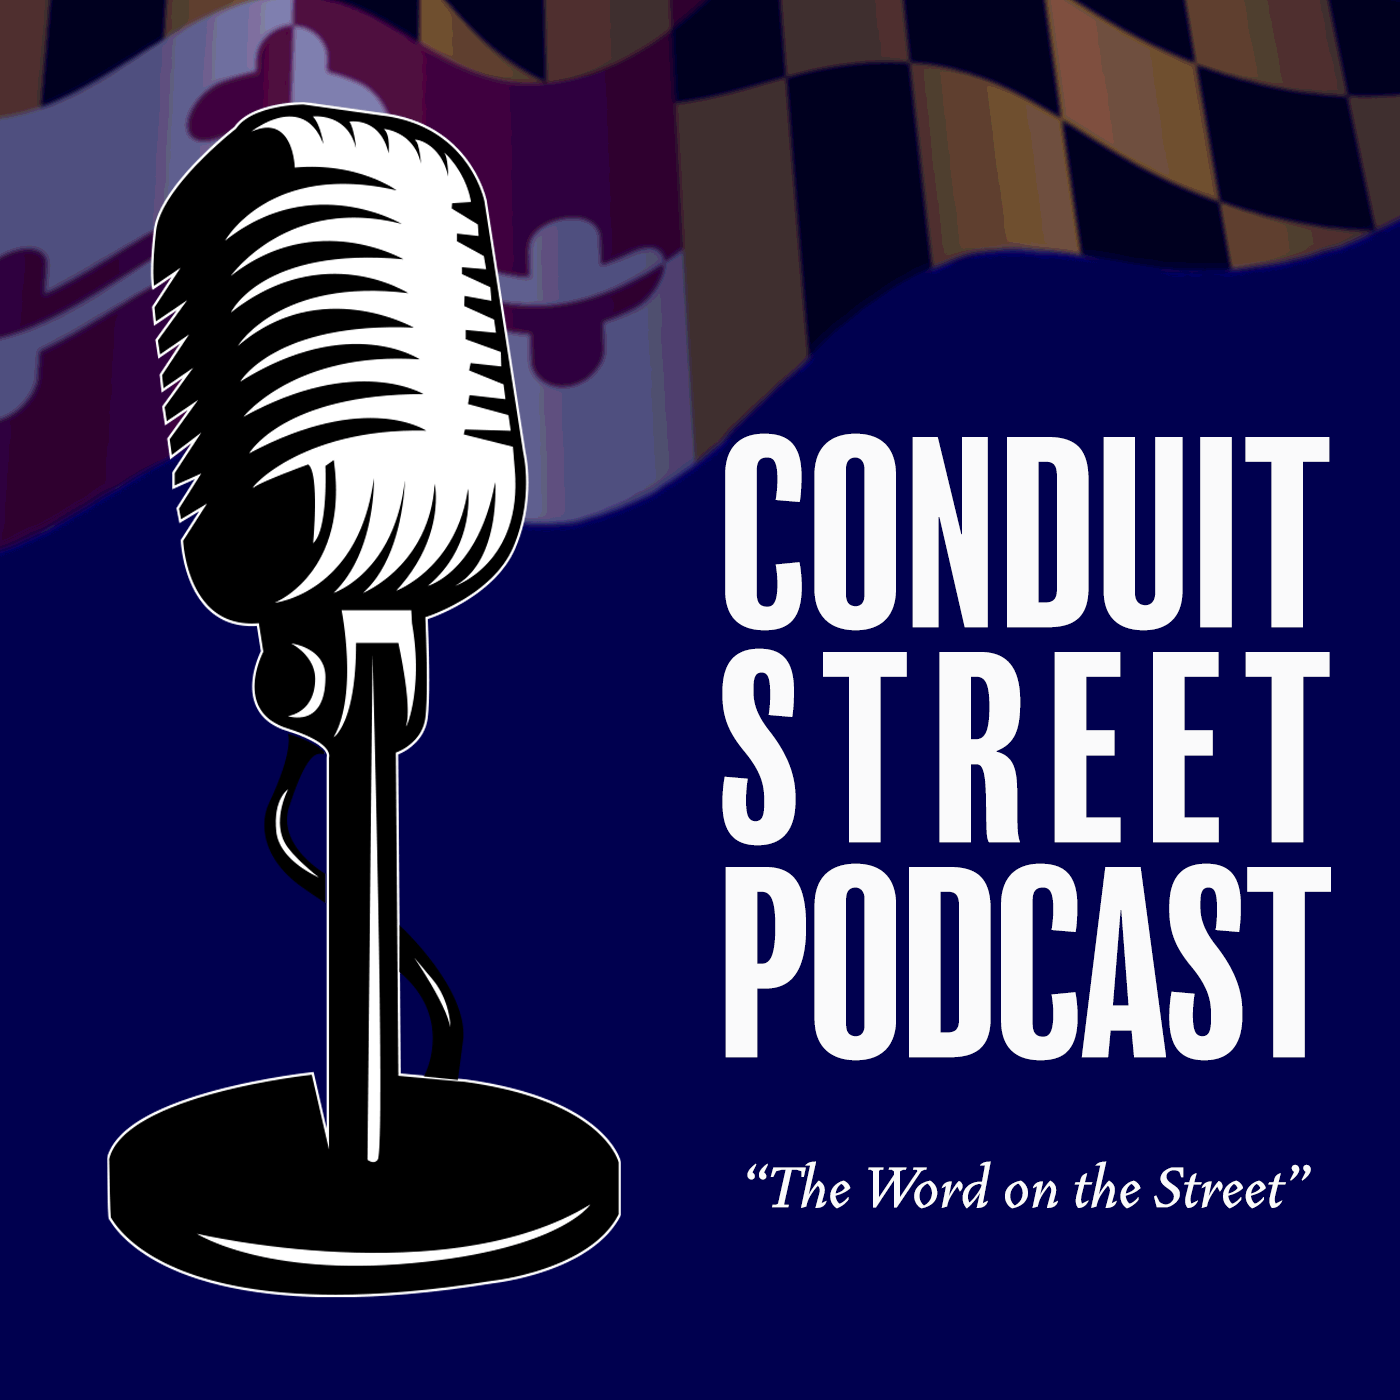 Conduit Street Podcast: Watching Washington… Still